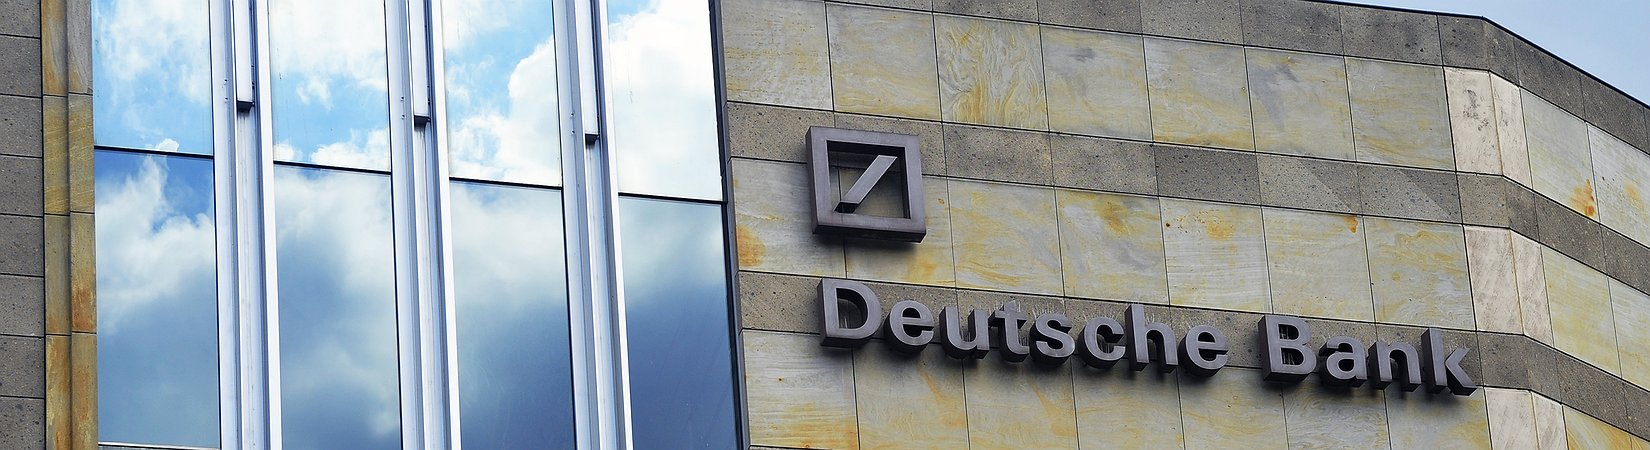 Deutsche Bank to face a negative impact of $1.2 billion on its Q4 pre-tax profits